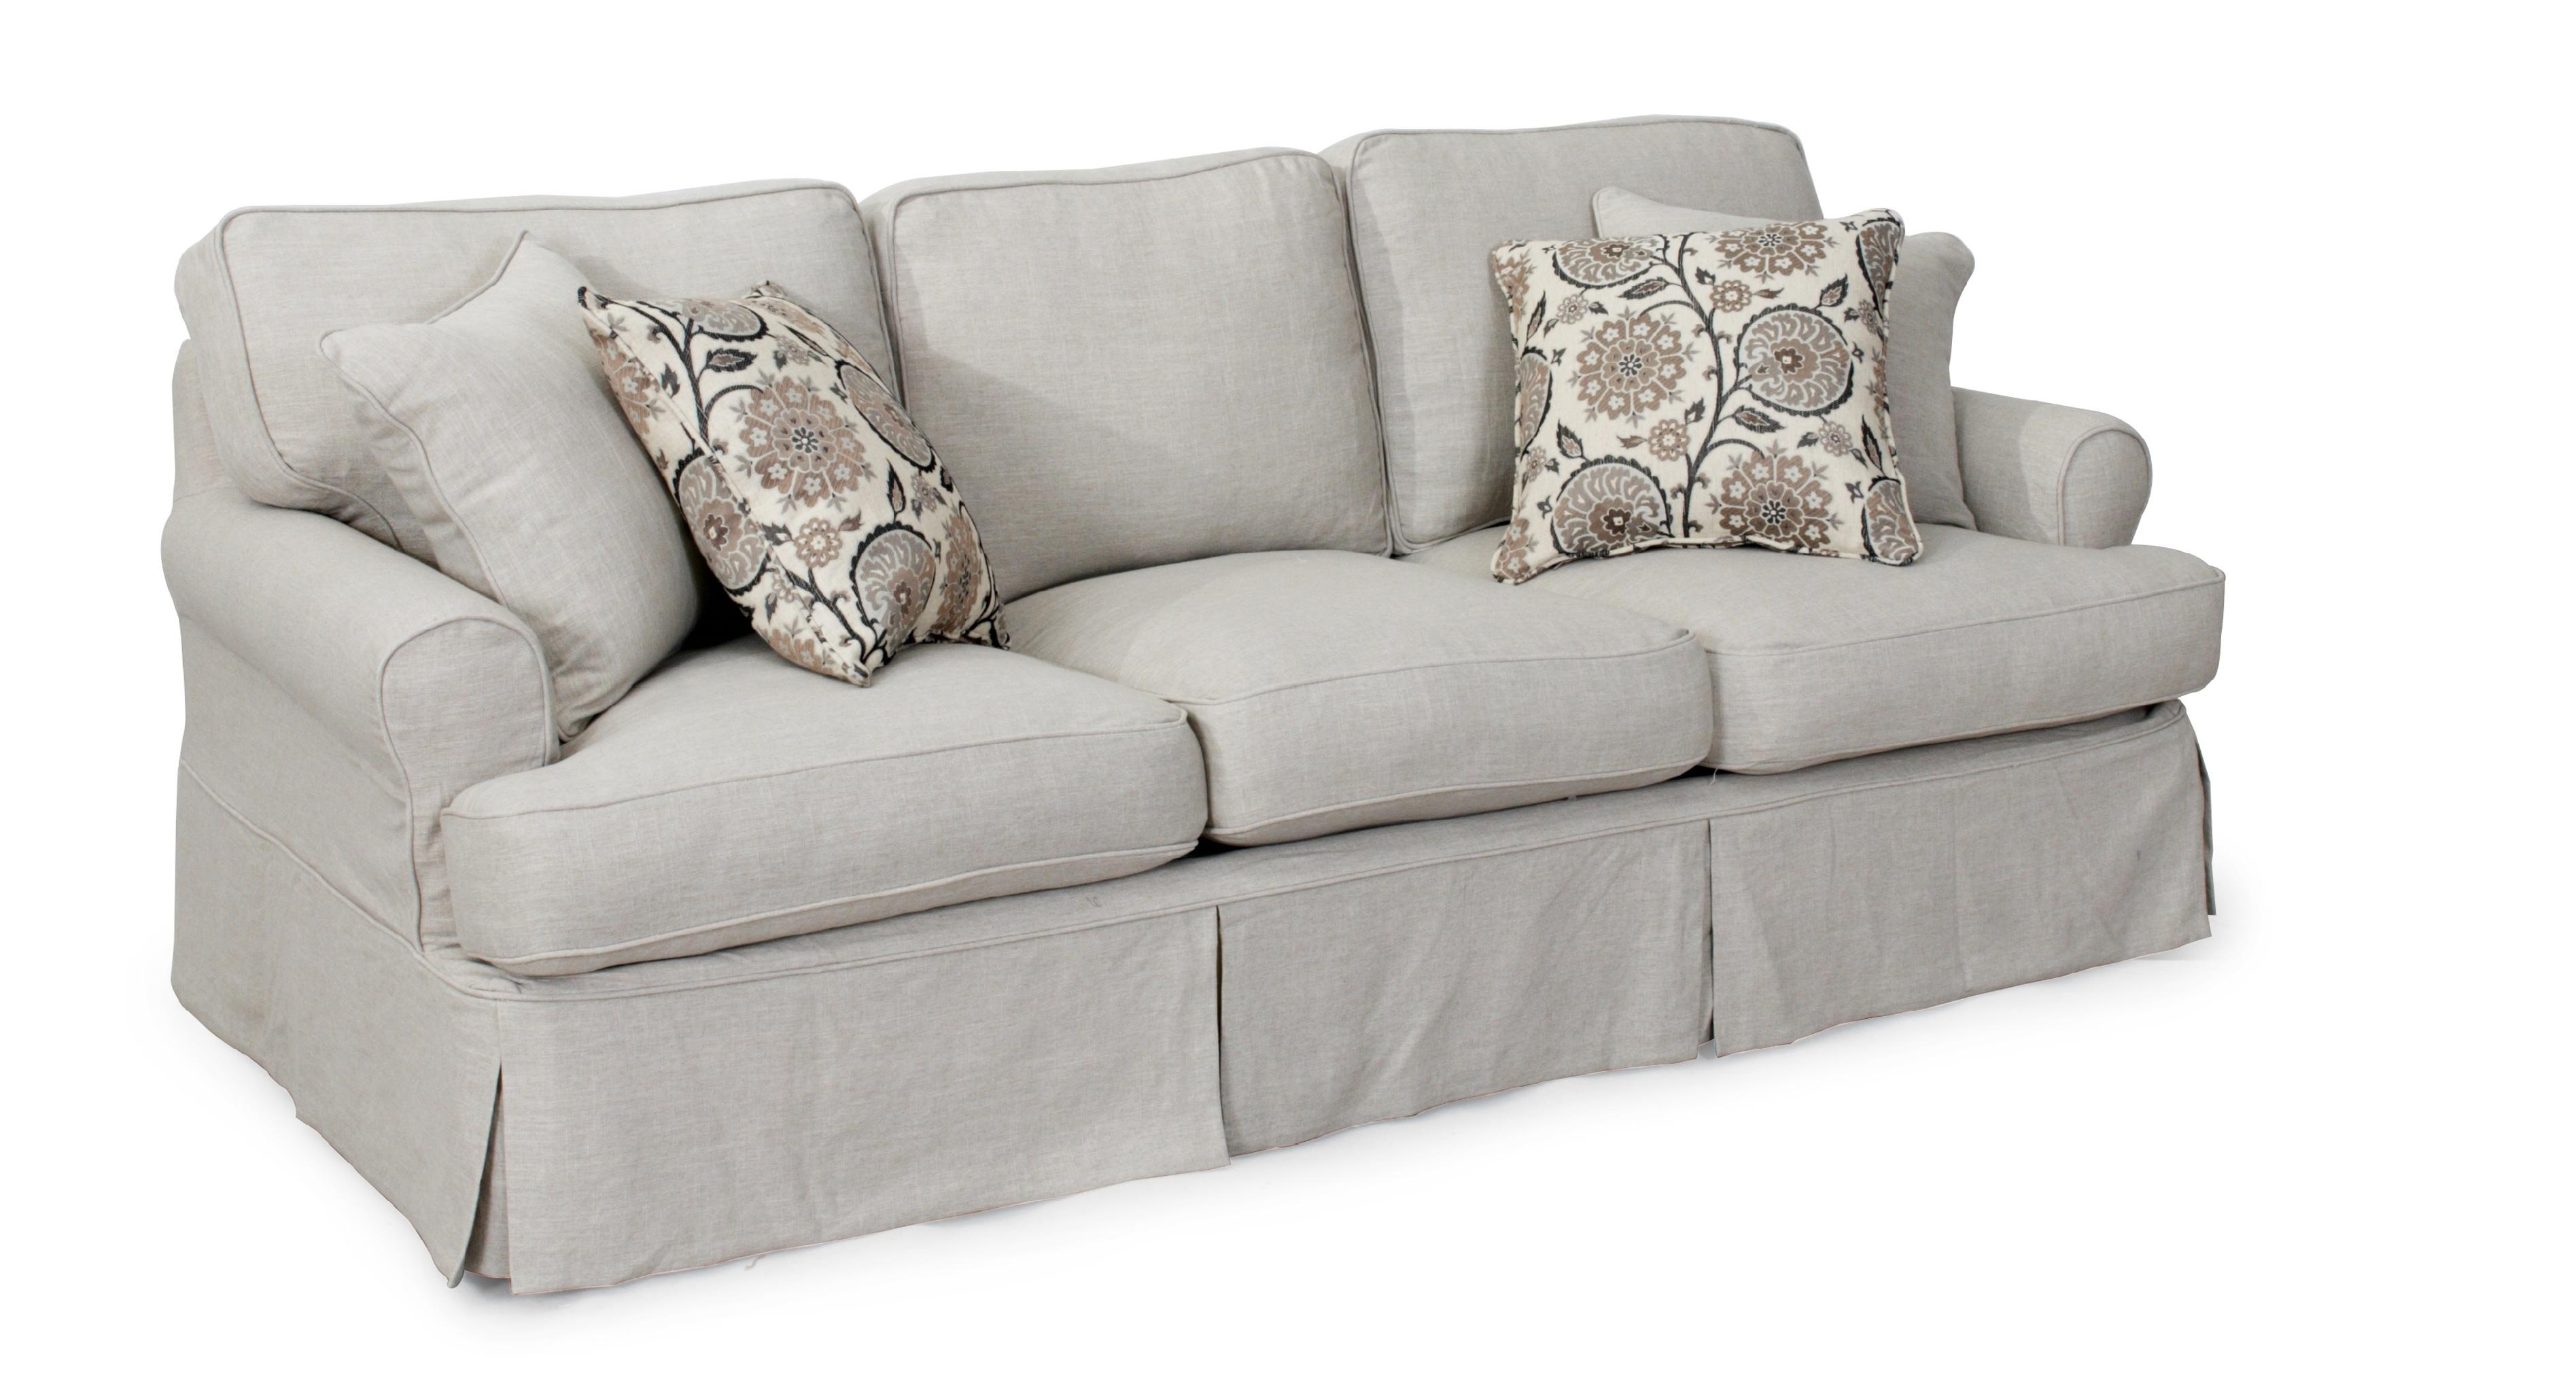 Sofas : Wonderful Ready Made Sofa Covers Large Sofa Covers Sofa With Regard To Large Sofa Slipcovers (Image 20 of 23)